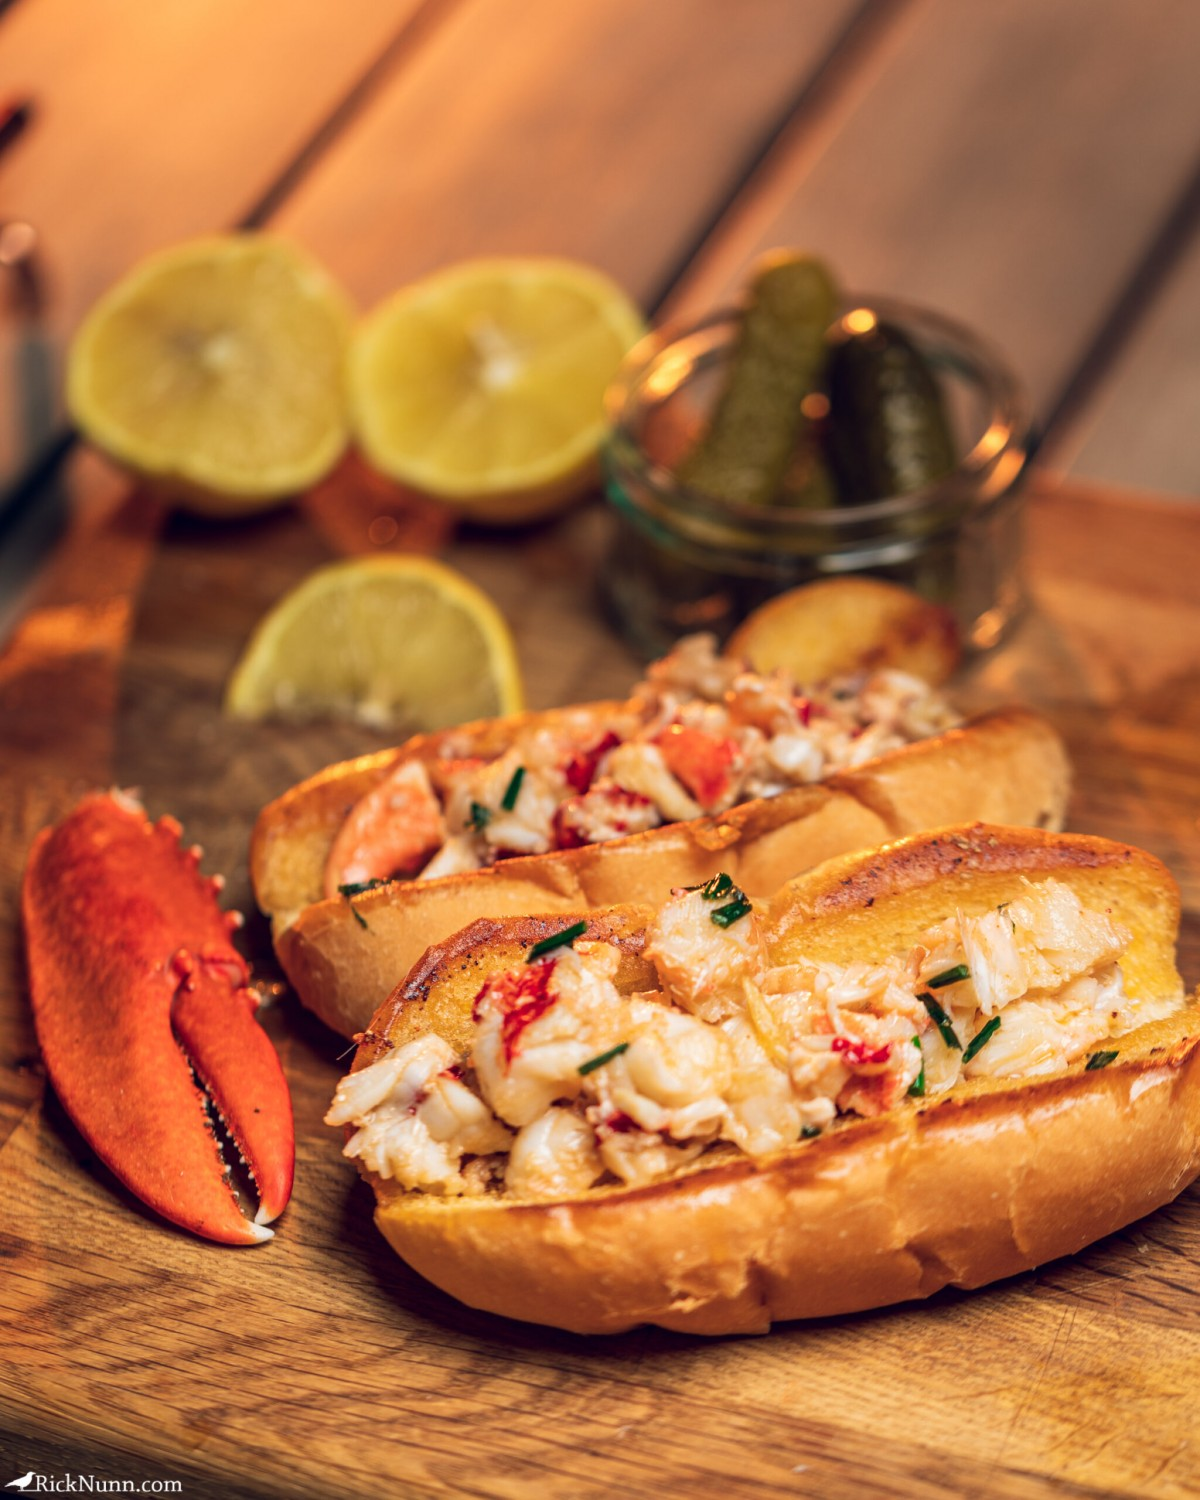 Connecticut Hot Lobster Roll - Connecticut Hot Lobster Roll 06 Photographed by Rick Nunn